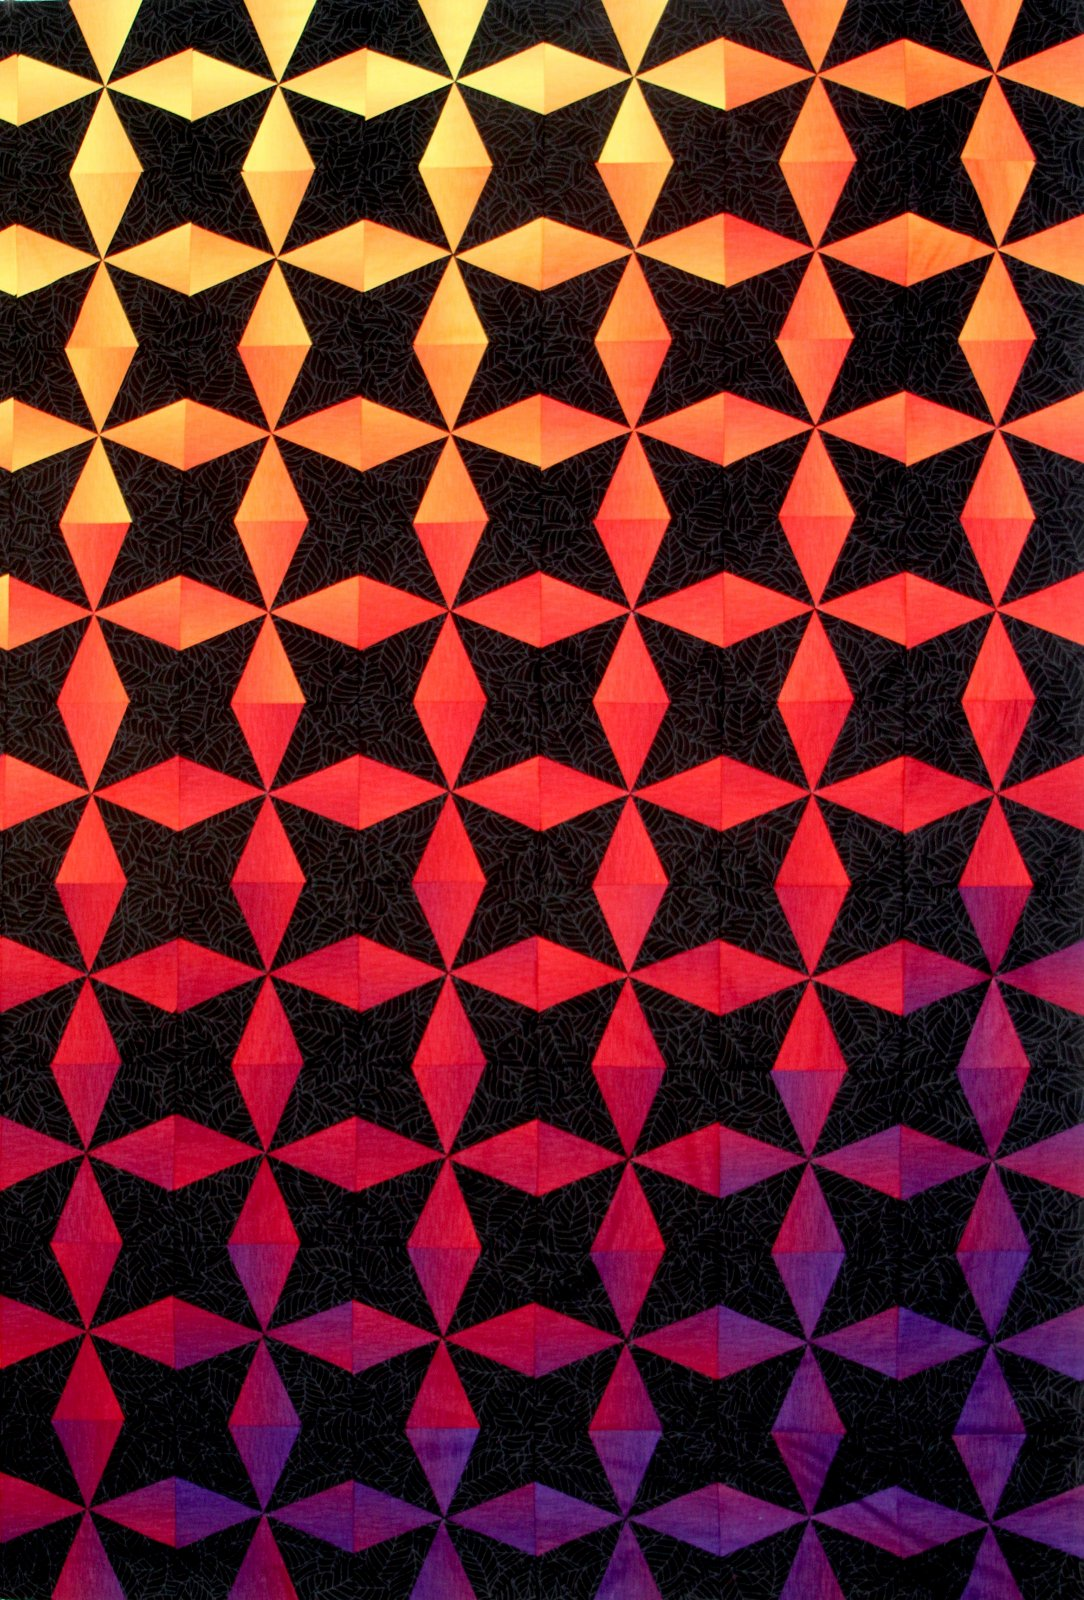 Ombre Octagon Pattern